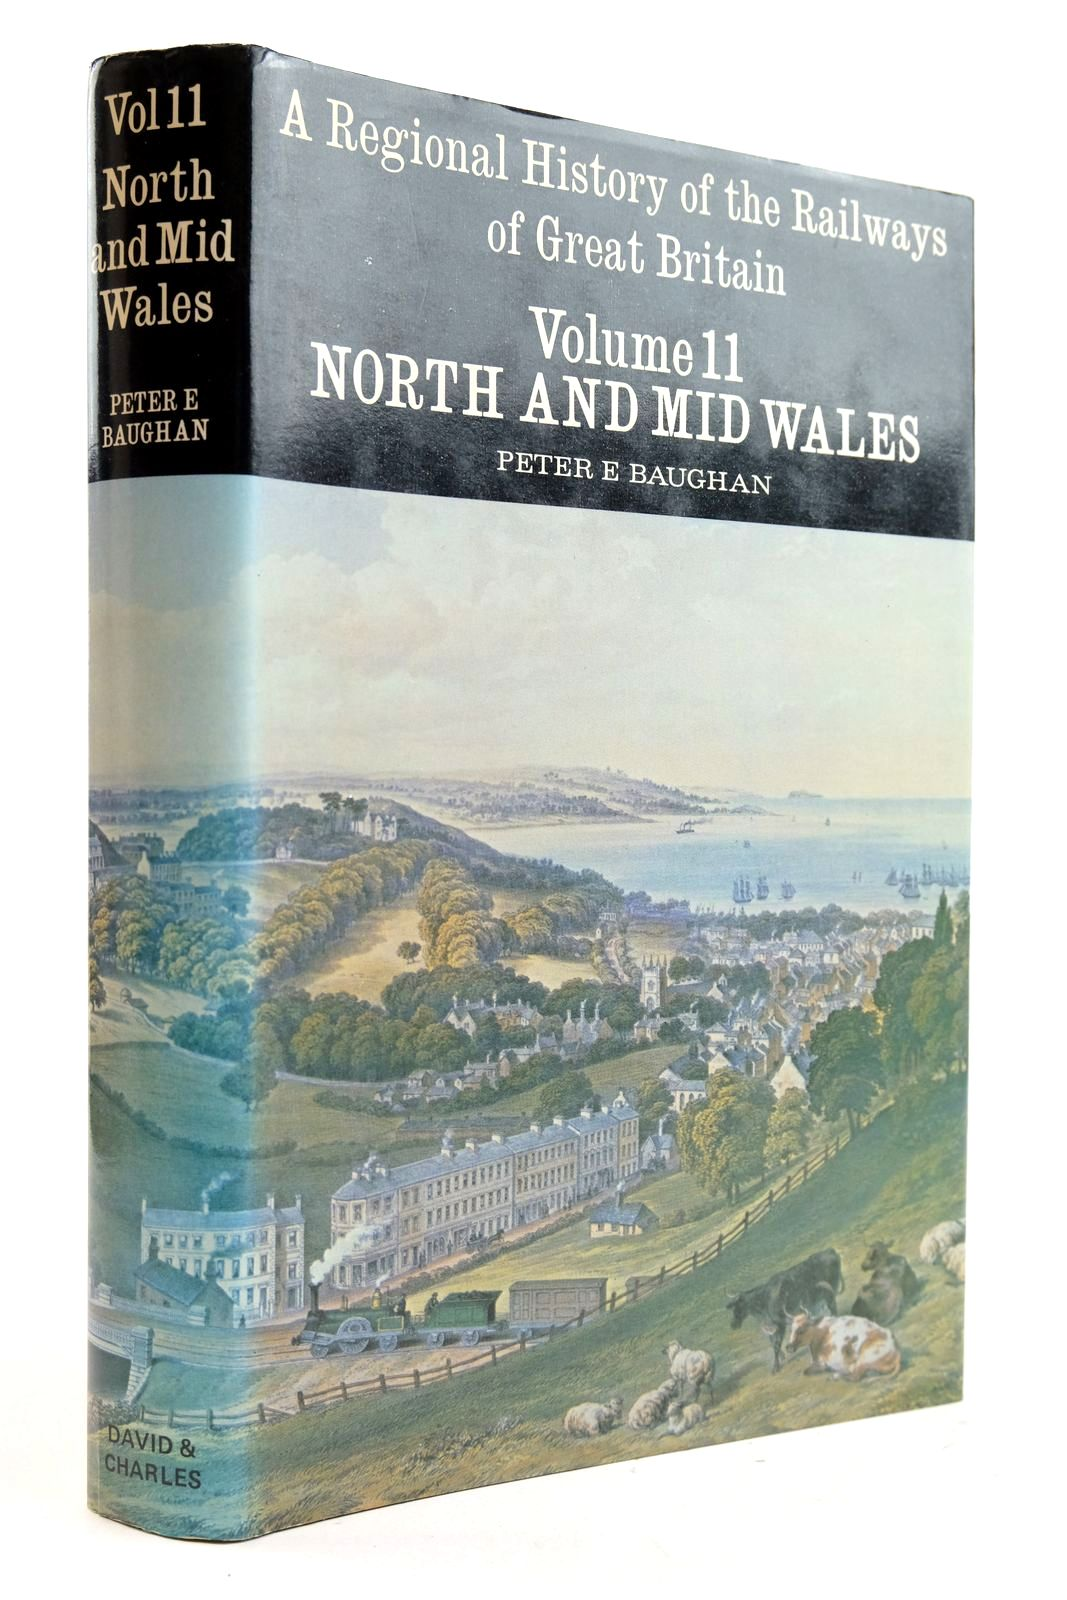 Photo of A REGIONAL HISTORY OF THE RAILWAYS OF GREAT BRITAIN VOLUME 11 NORTH AND MID-WALES written by Baughan, Peter E. published by David & Charles (STOCK CODE: 2133057)  for sale by Stella & Rose's Books